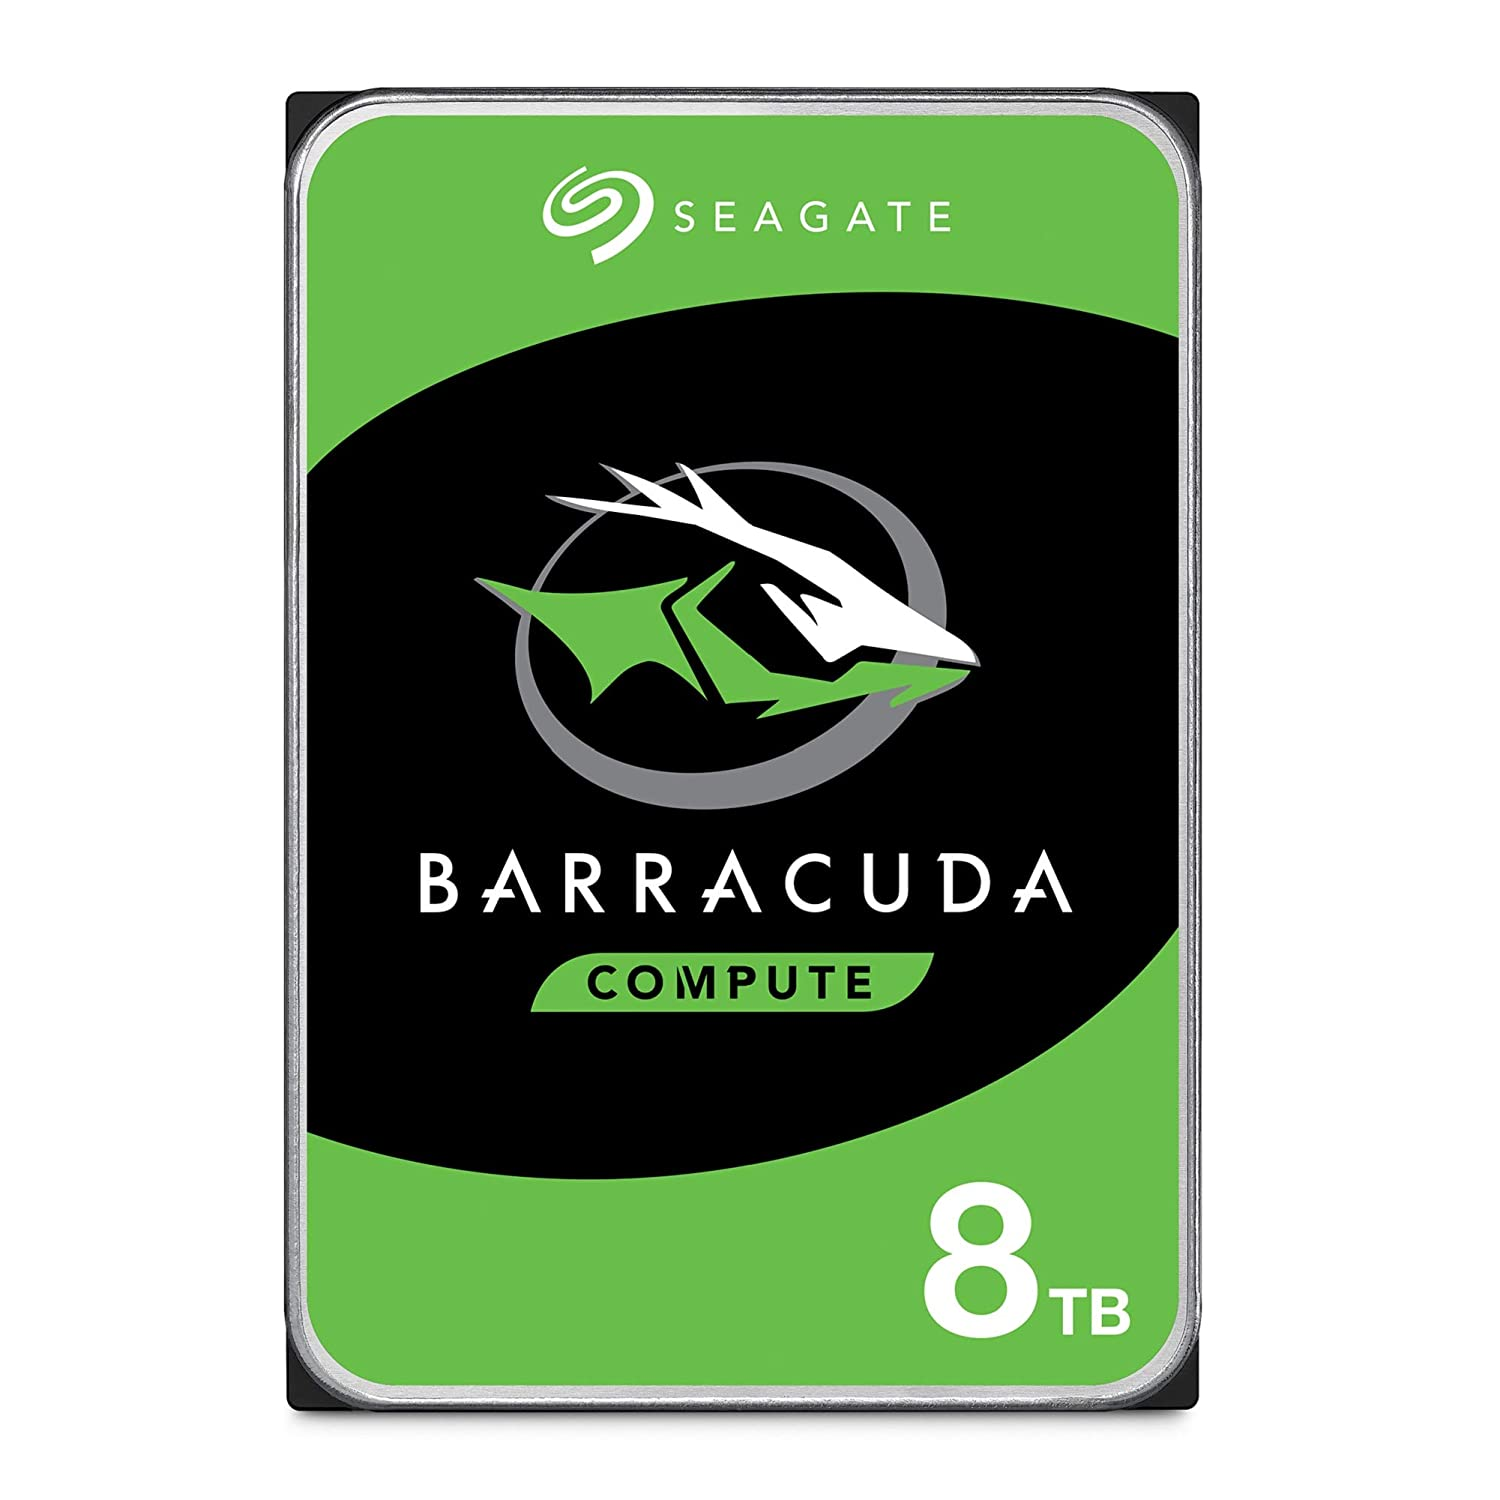 Seagate BarraCuda 8TB Internal Hard Drive HDD – 3.5 Inch Sata 6 Gb/s 5400 RPM 256MB Cache for Computer Desktop PC – Frustration Free Packaging (ST8000DM004)